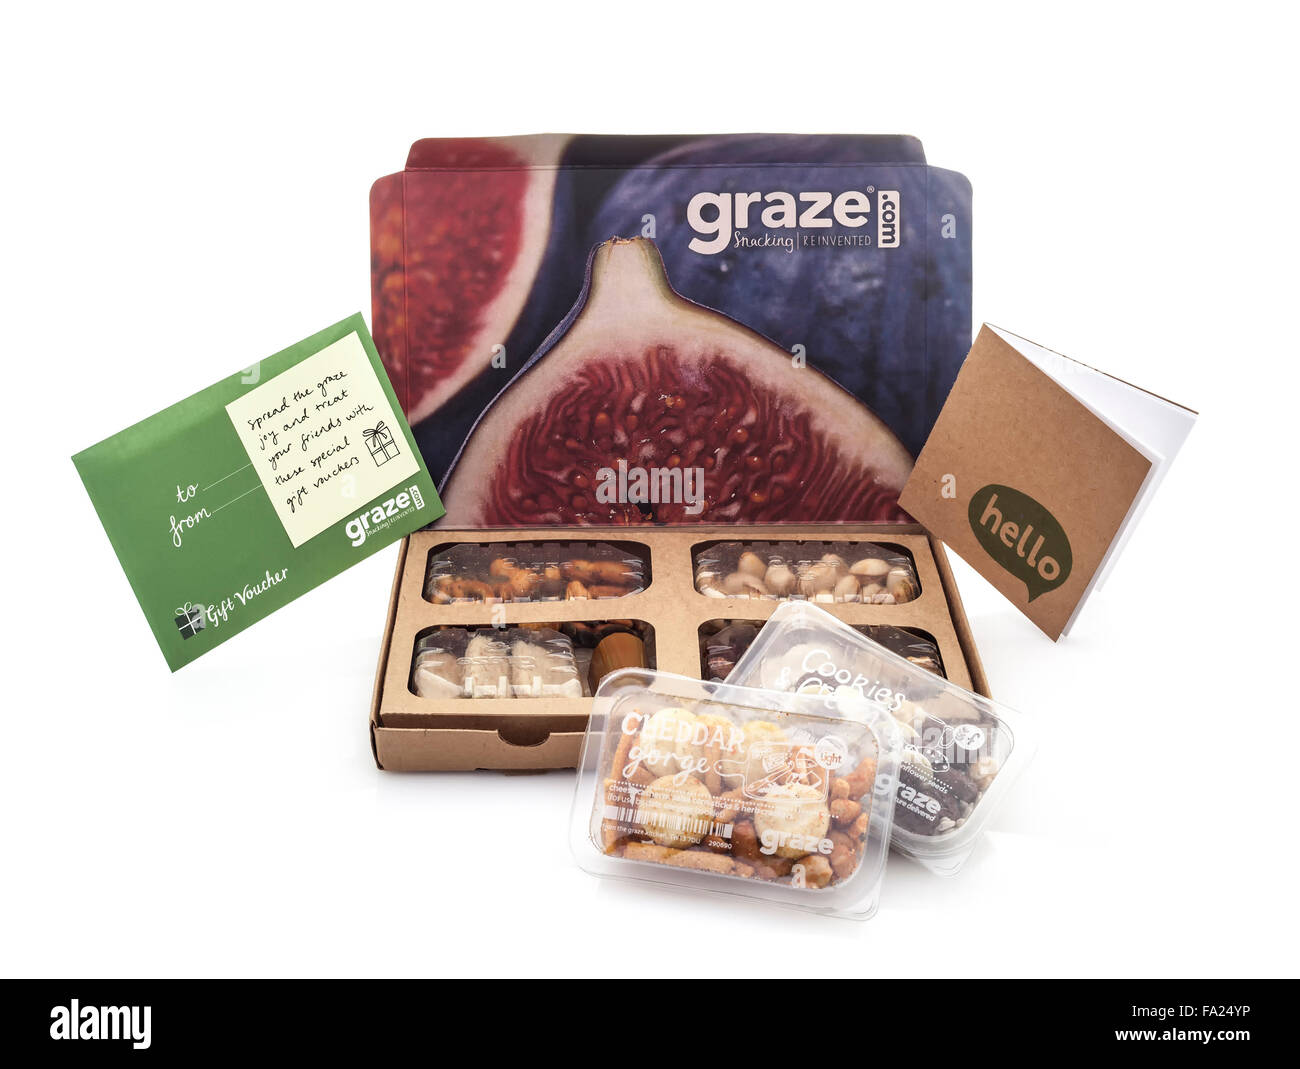 Graze Snacking Box on a White background by graze.com snacking reinvented healthy snacks delivered - Stock Image